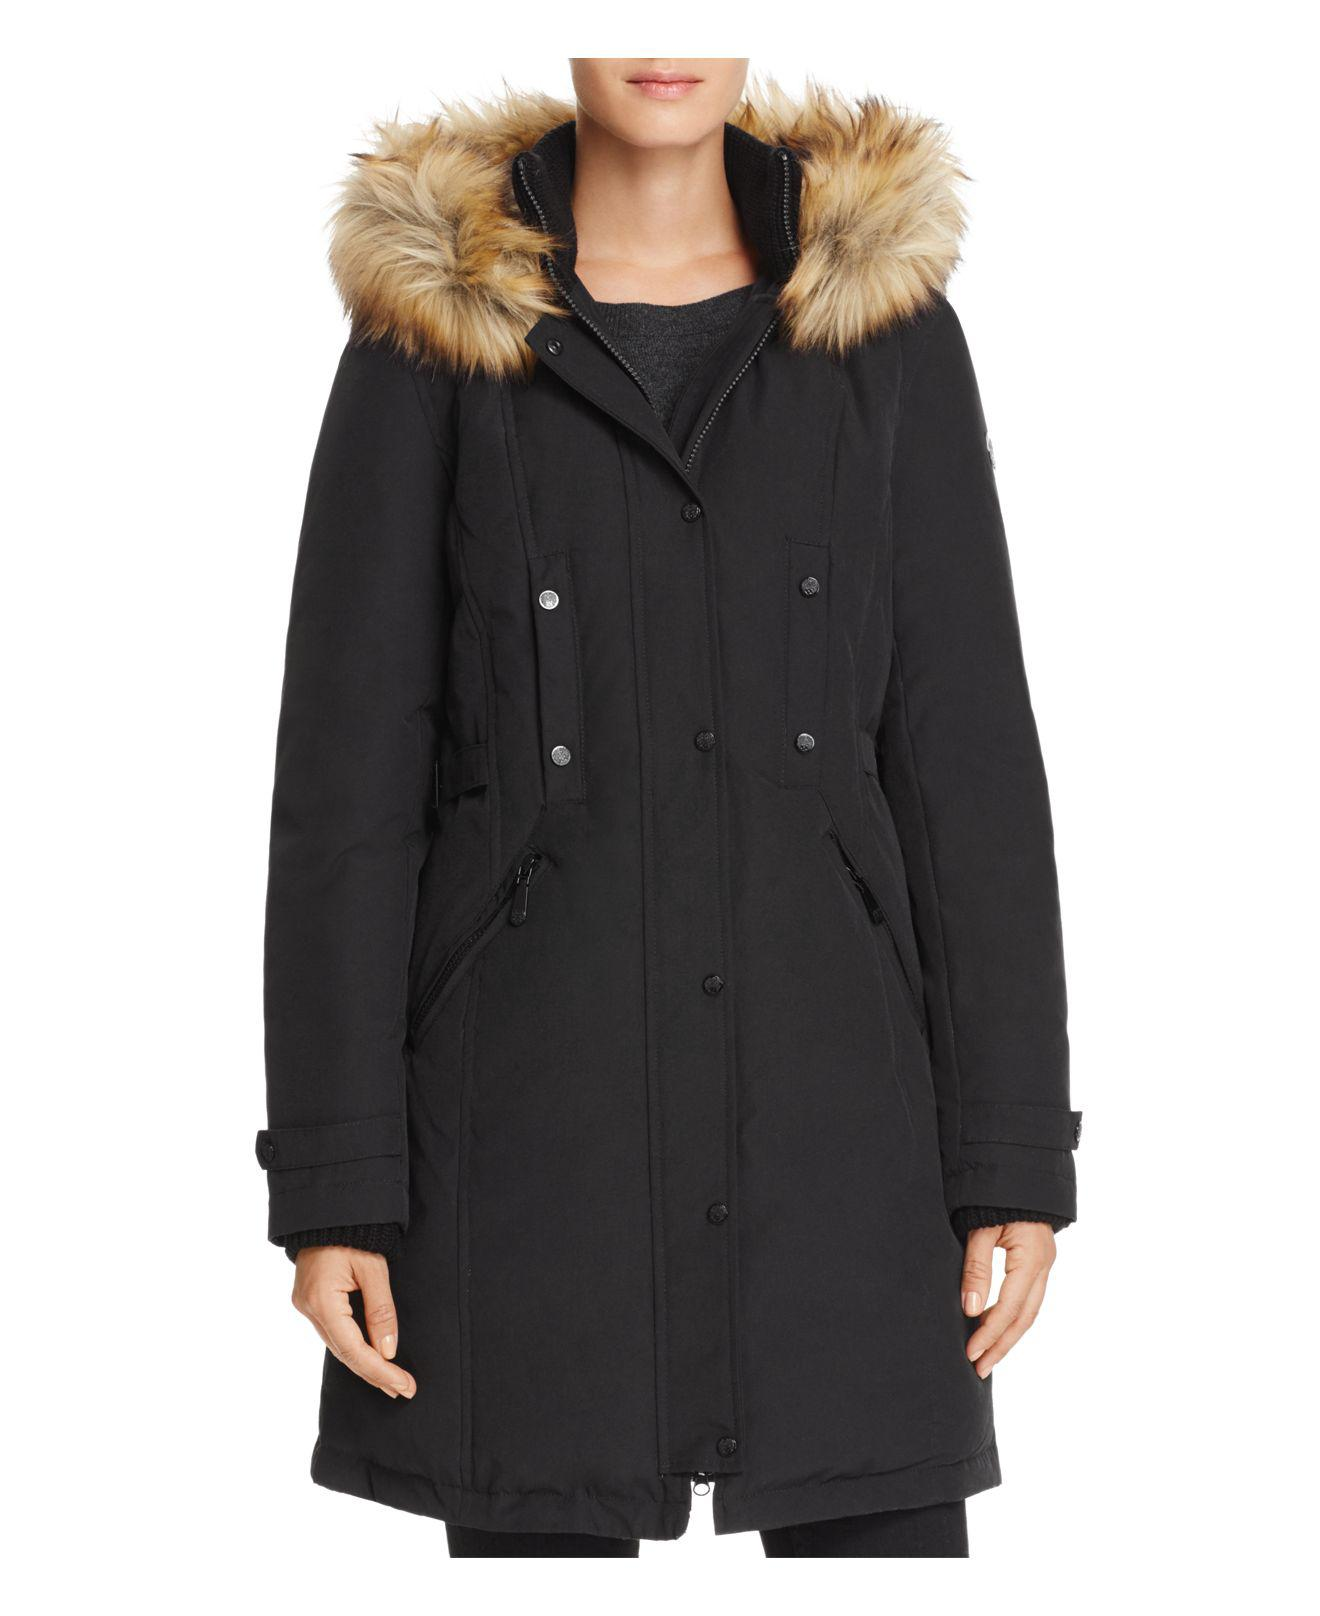 COATS & JACKETS - Faux furs Poéme Bohémien Fashionable Cheap Online E4KI2gC